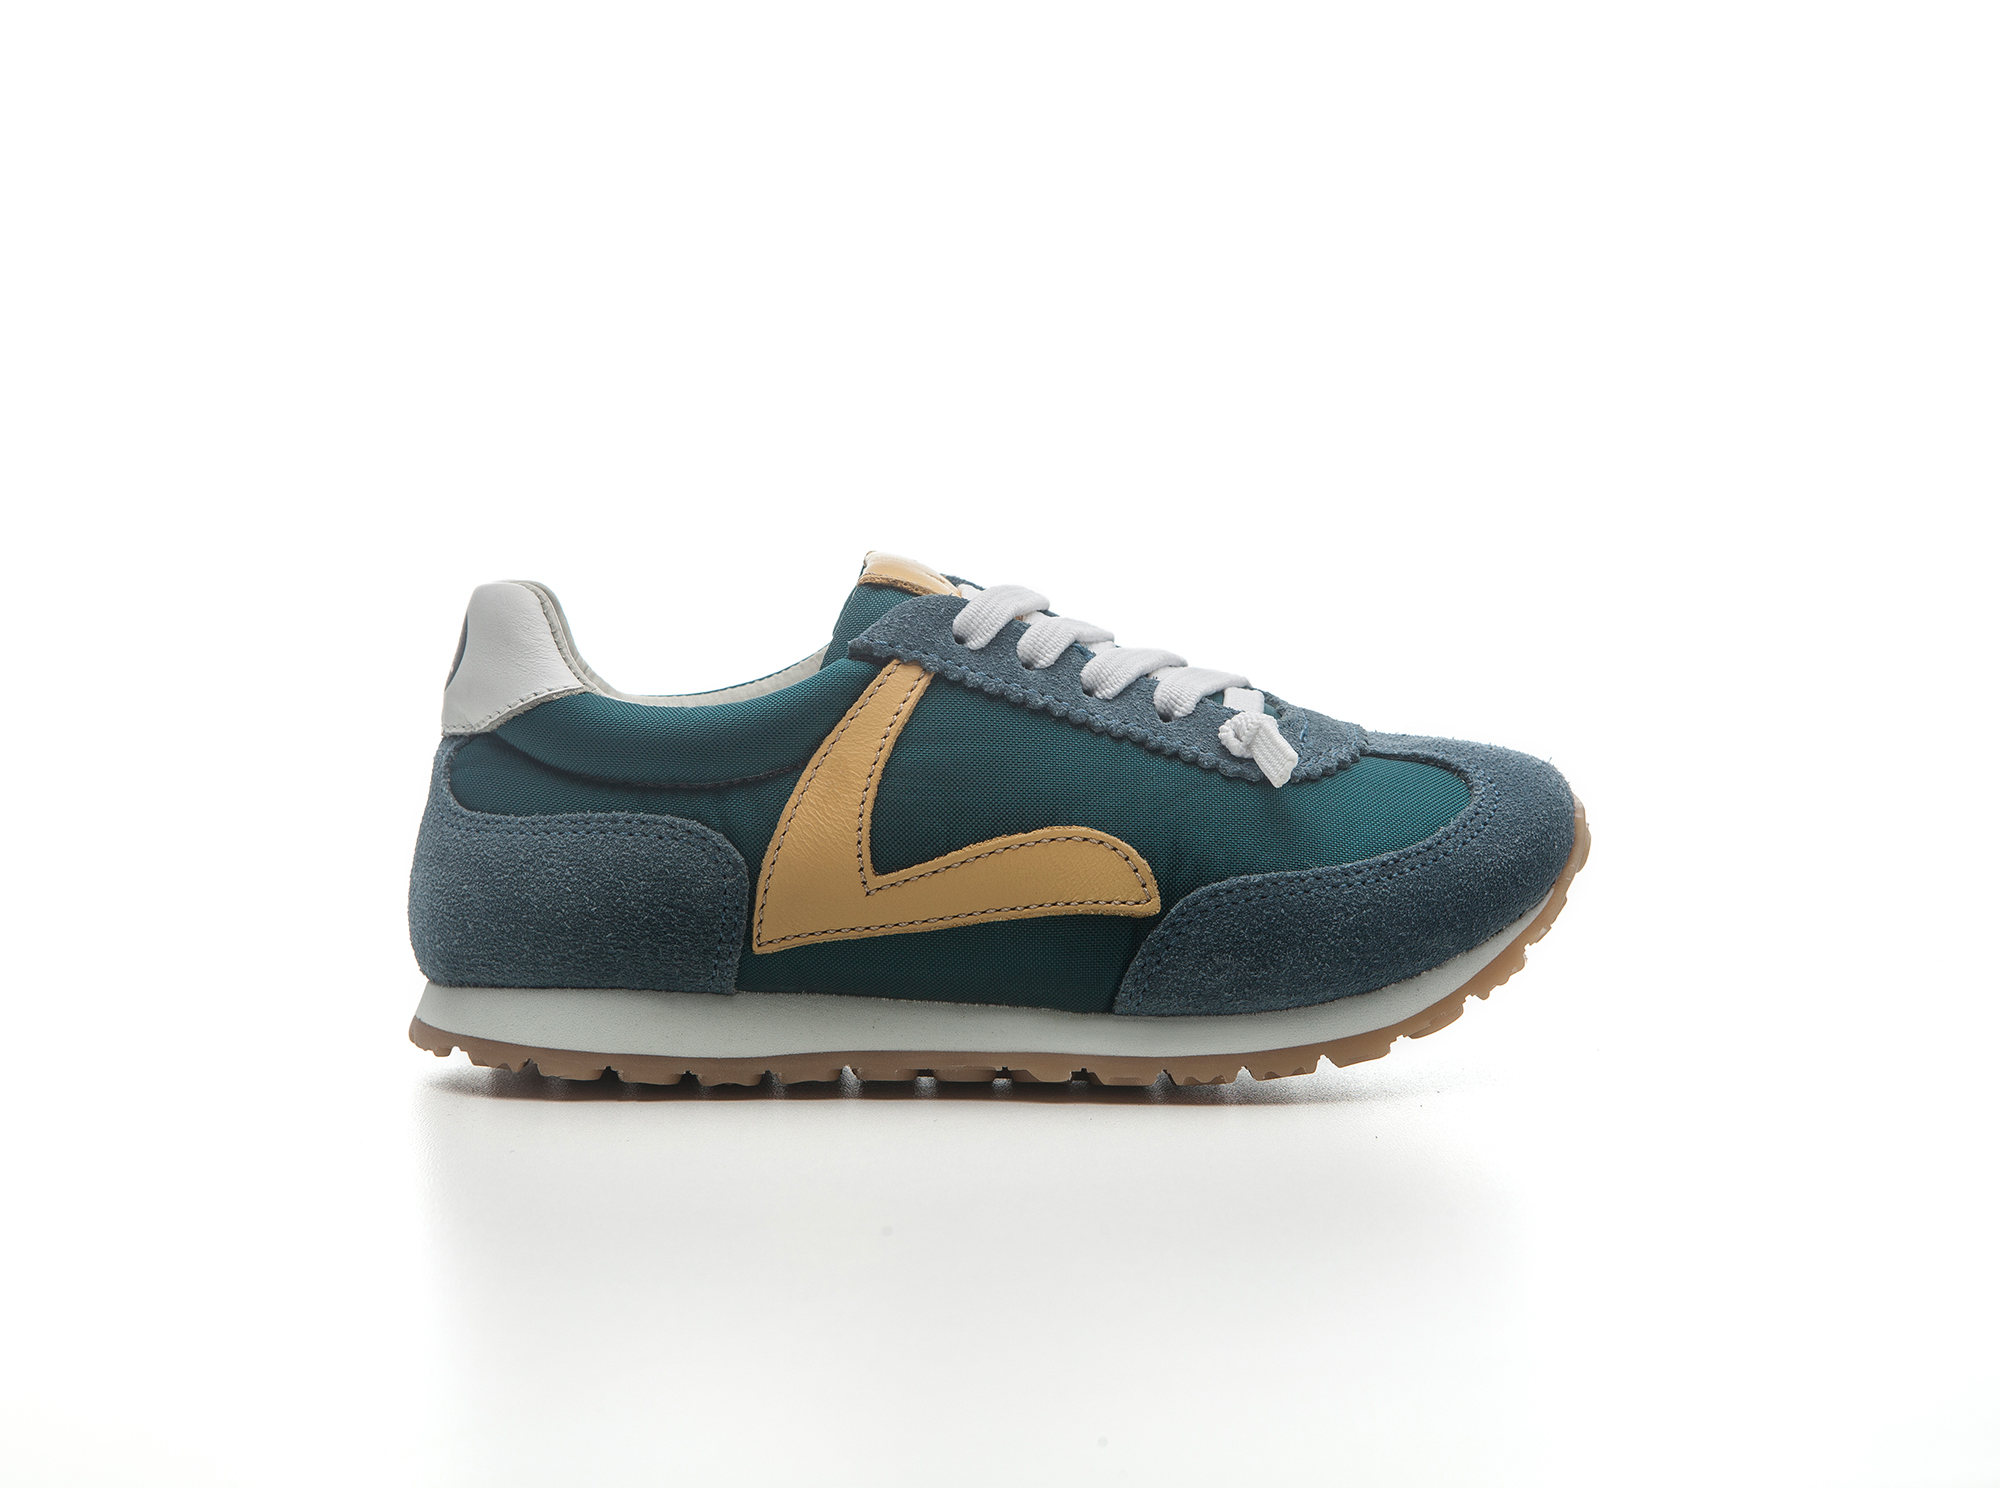 Tênis Run Palm Nylon/ Laguna Suede Junior 4 à 8 anos - 0